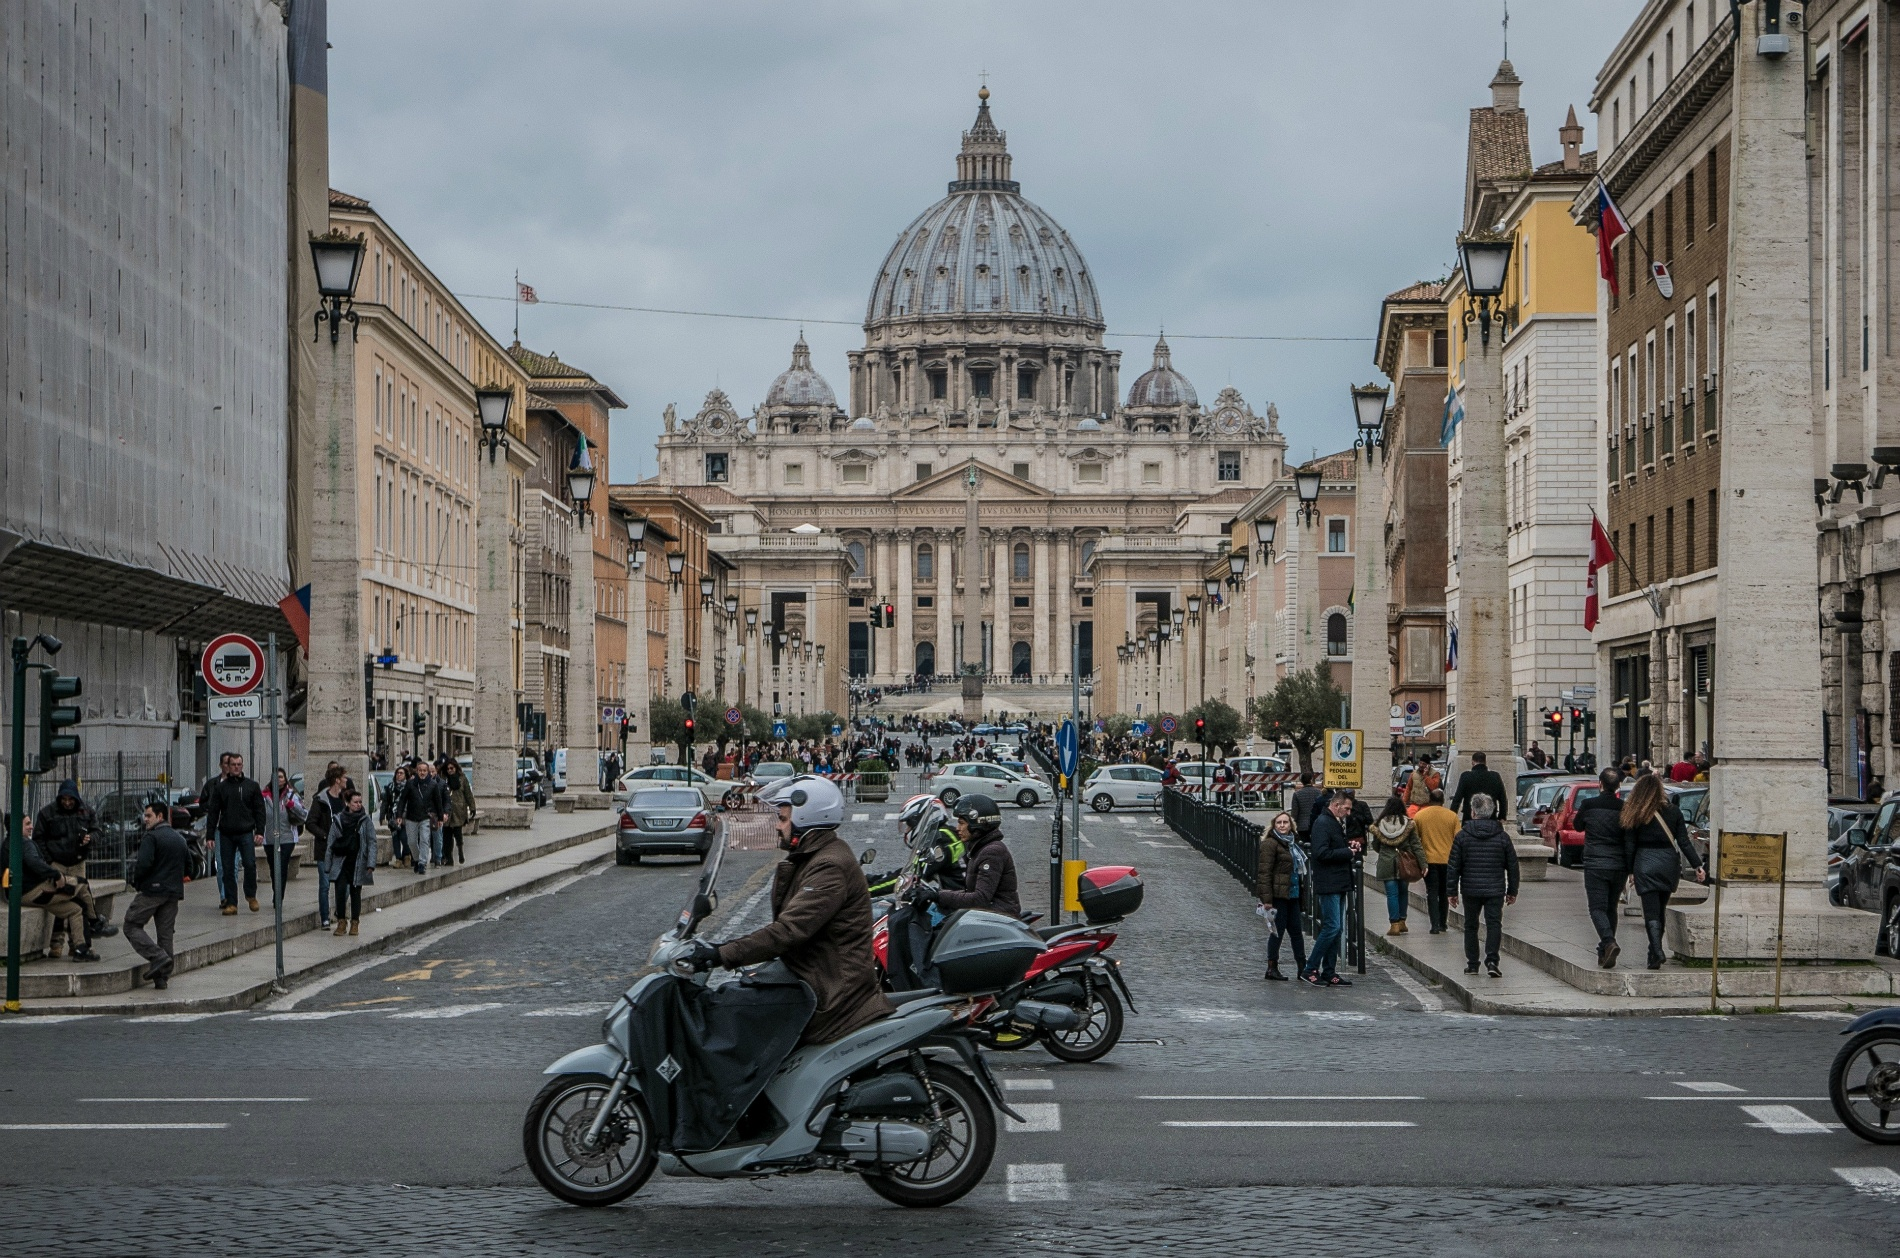 Visiting St. Peter's Square in Rome